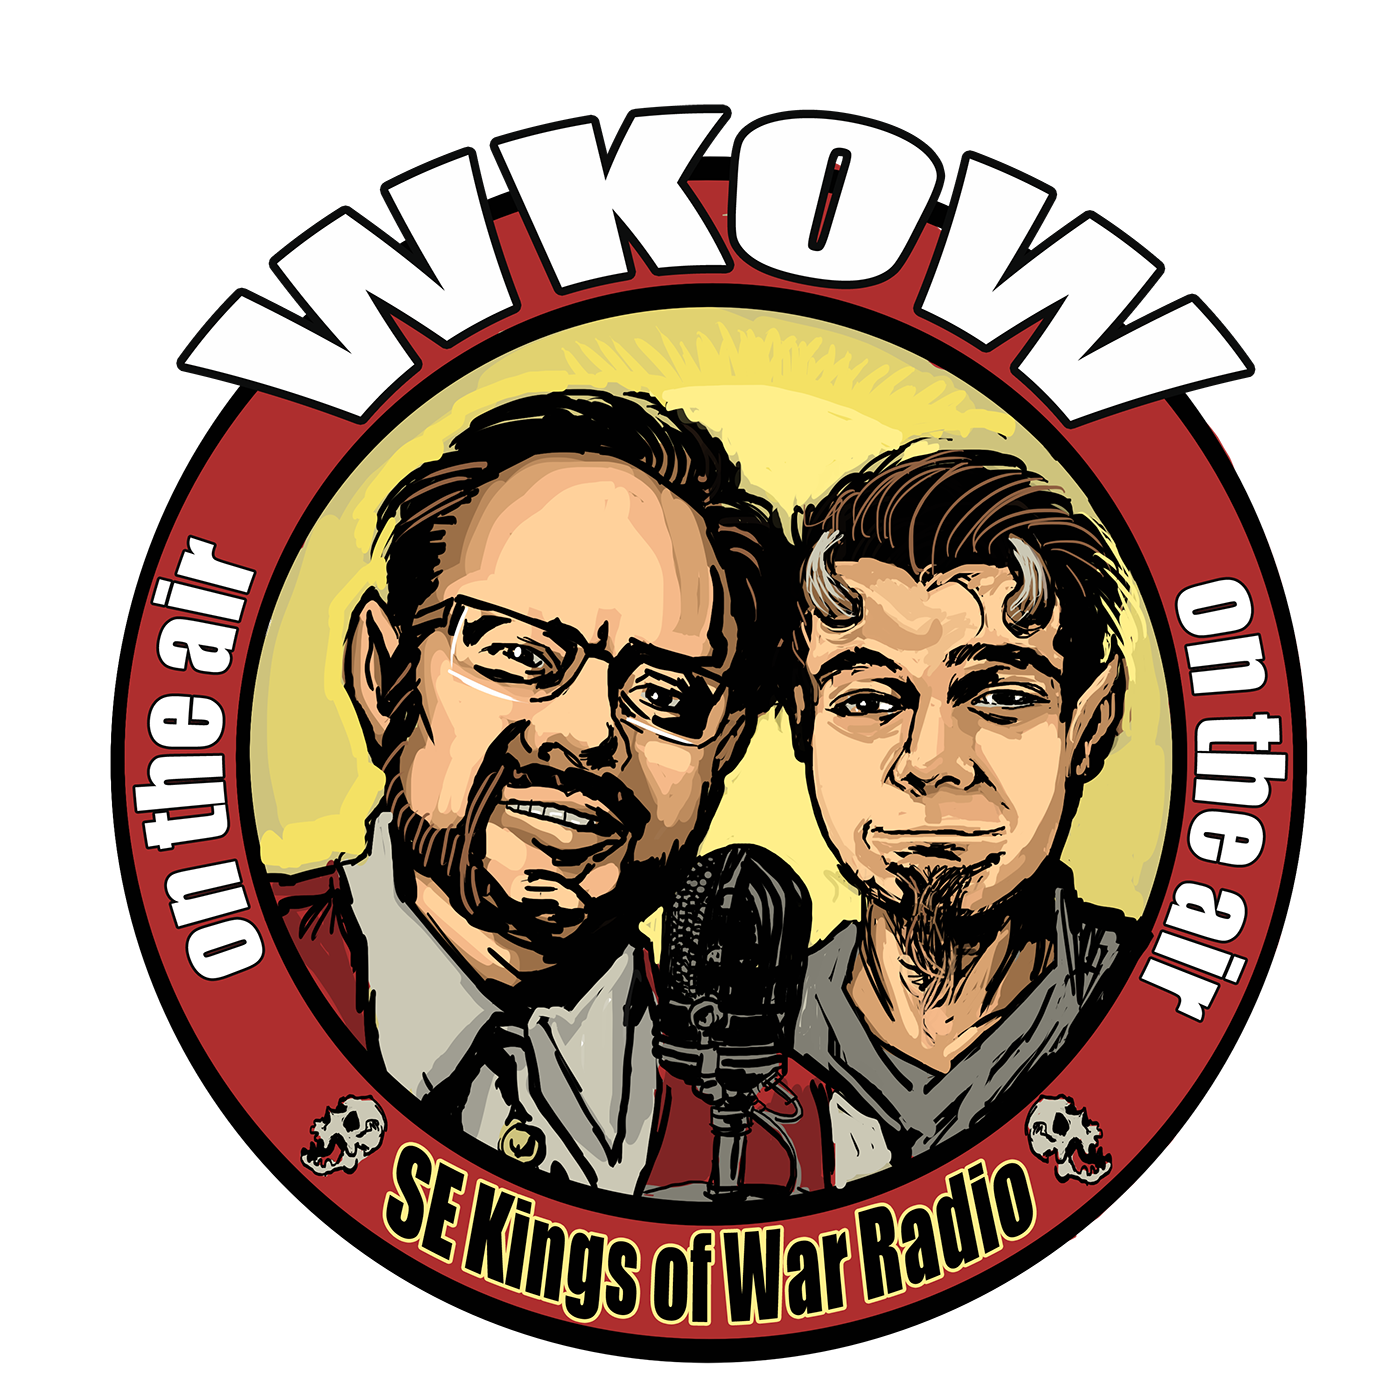 14/16 WKOW SE Kings of War Radio